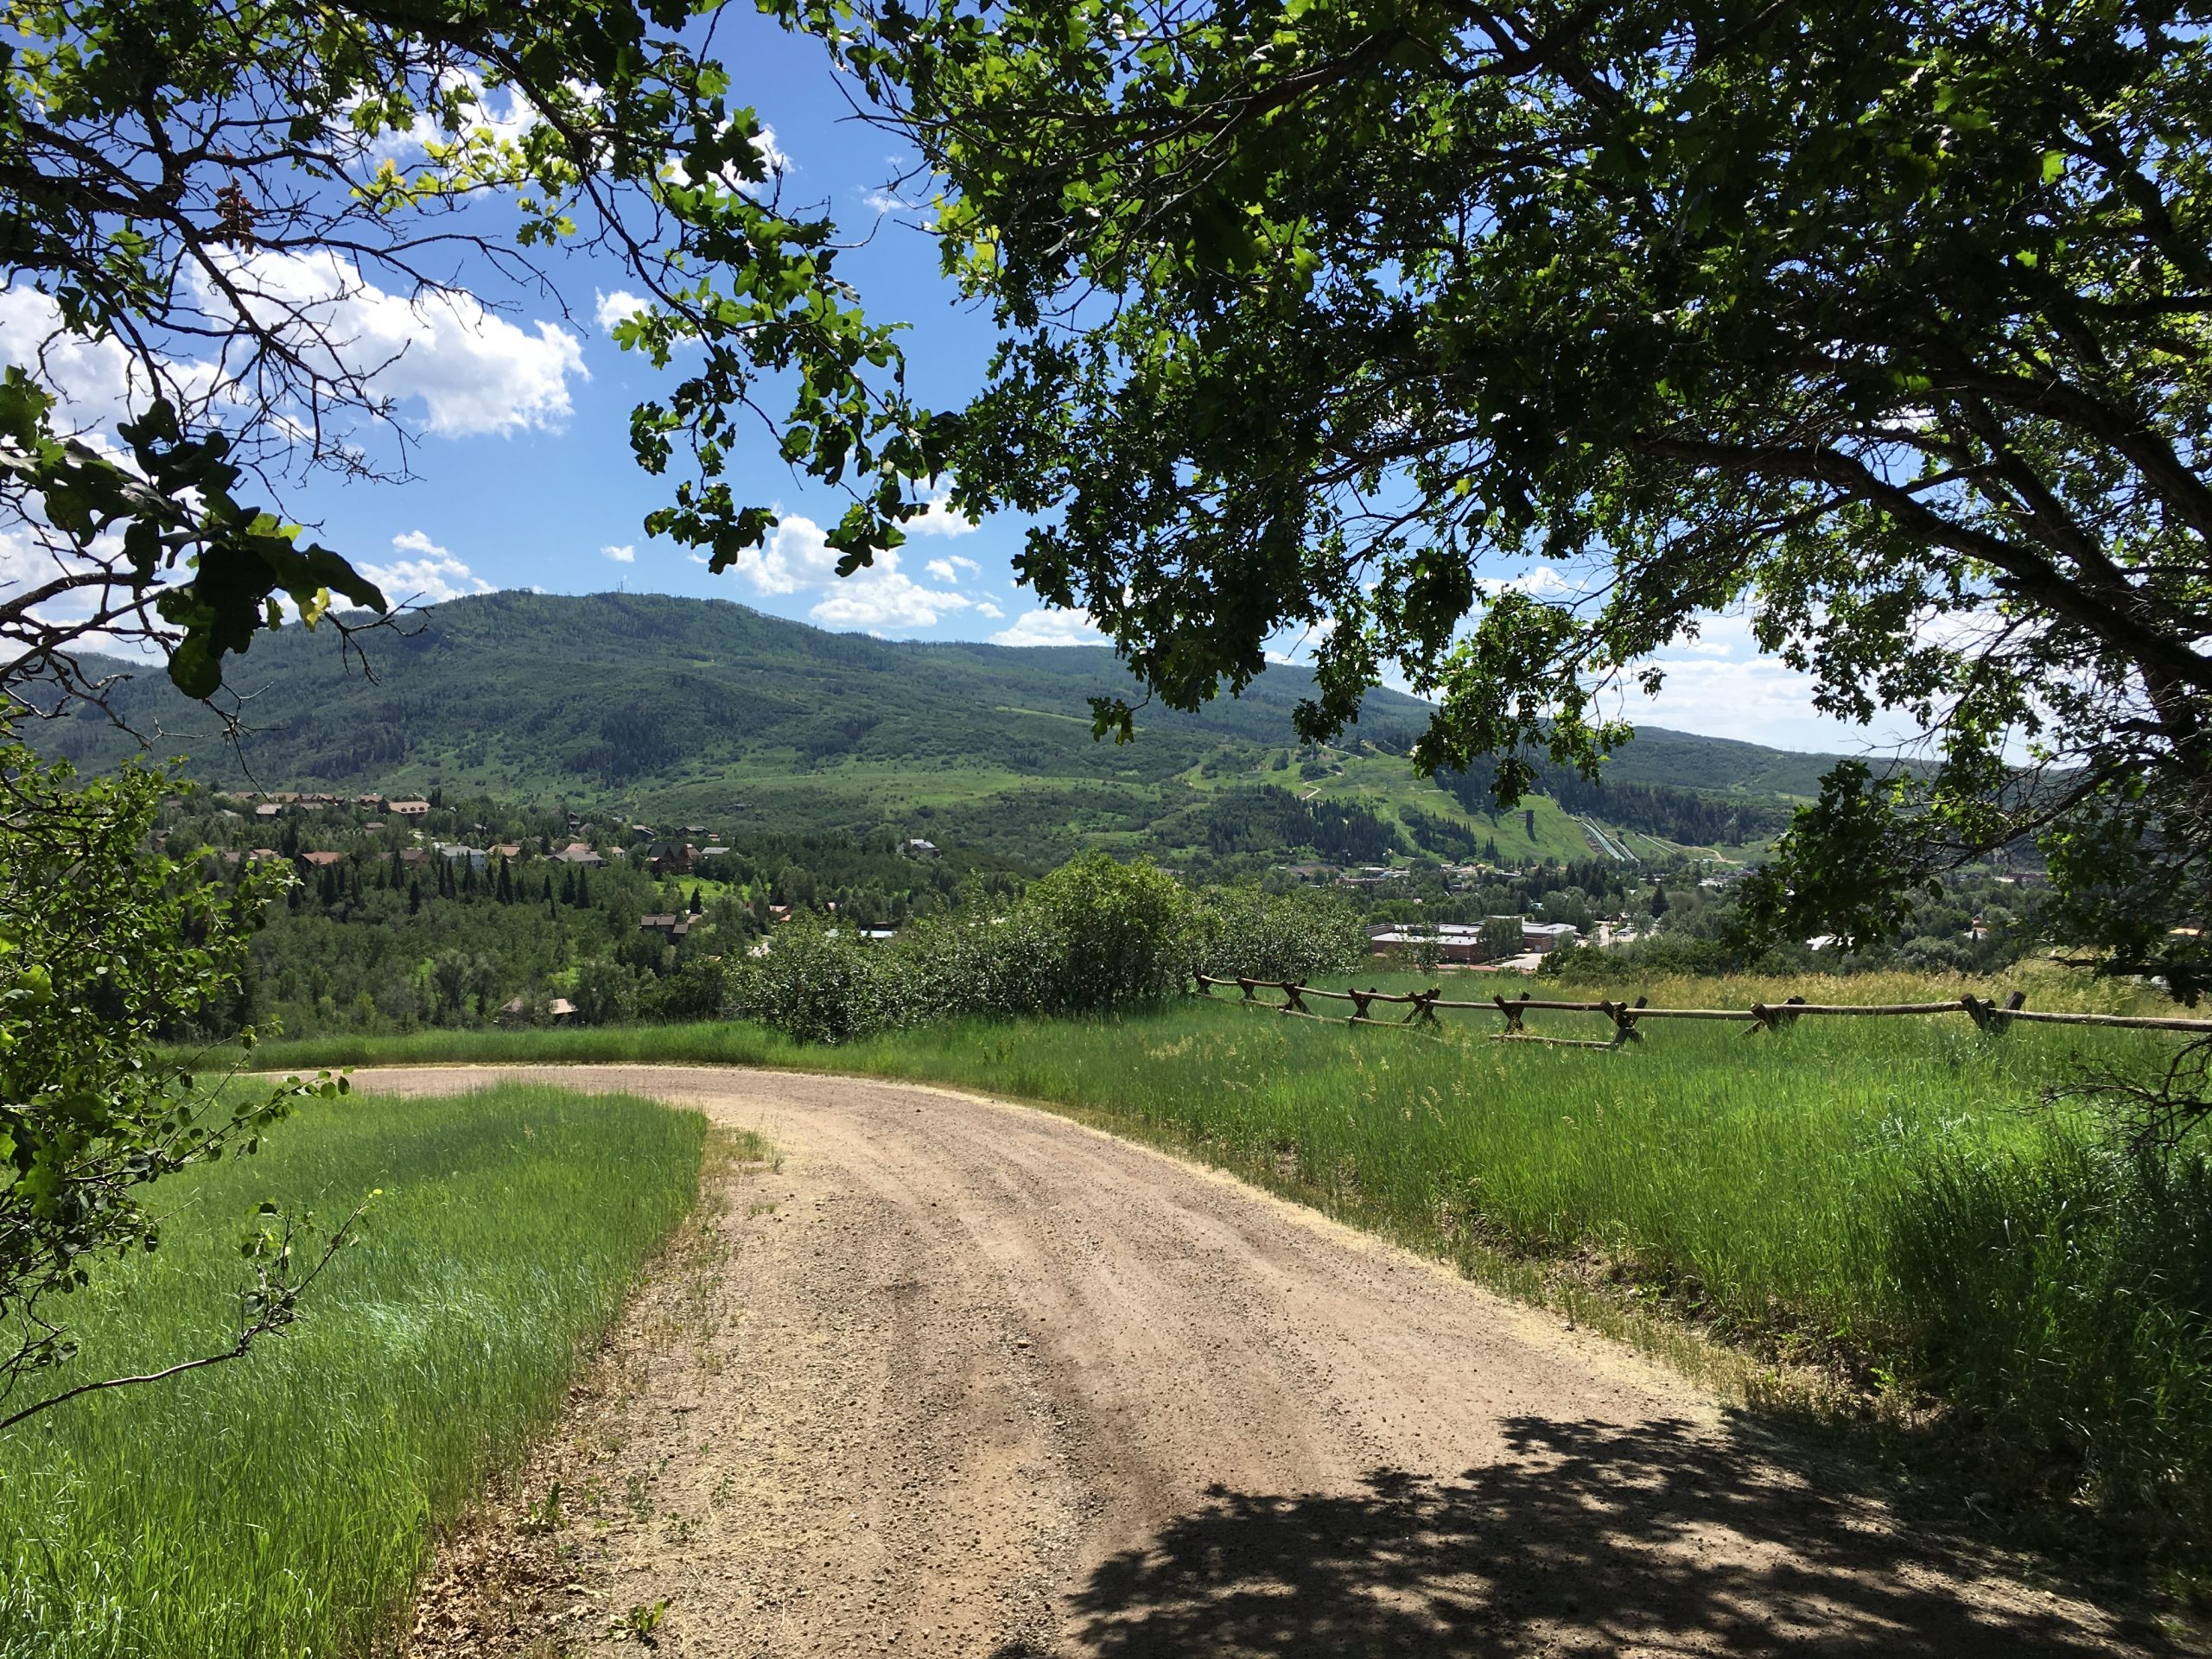 A tree lined lane with mountain views sold in 2020 - A memorable year for real estate!